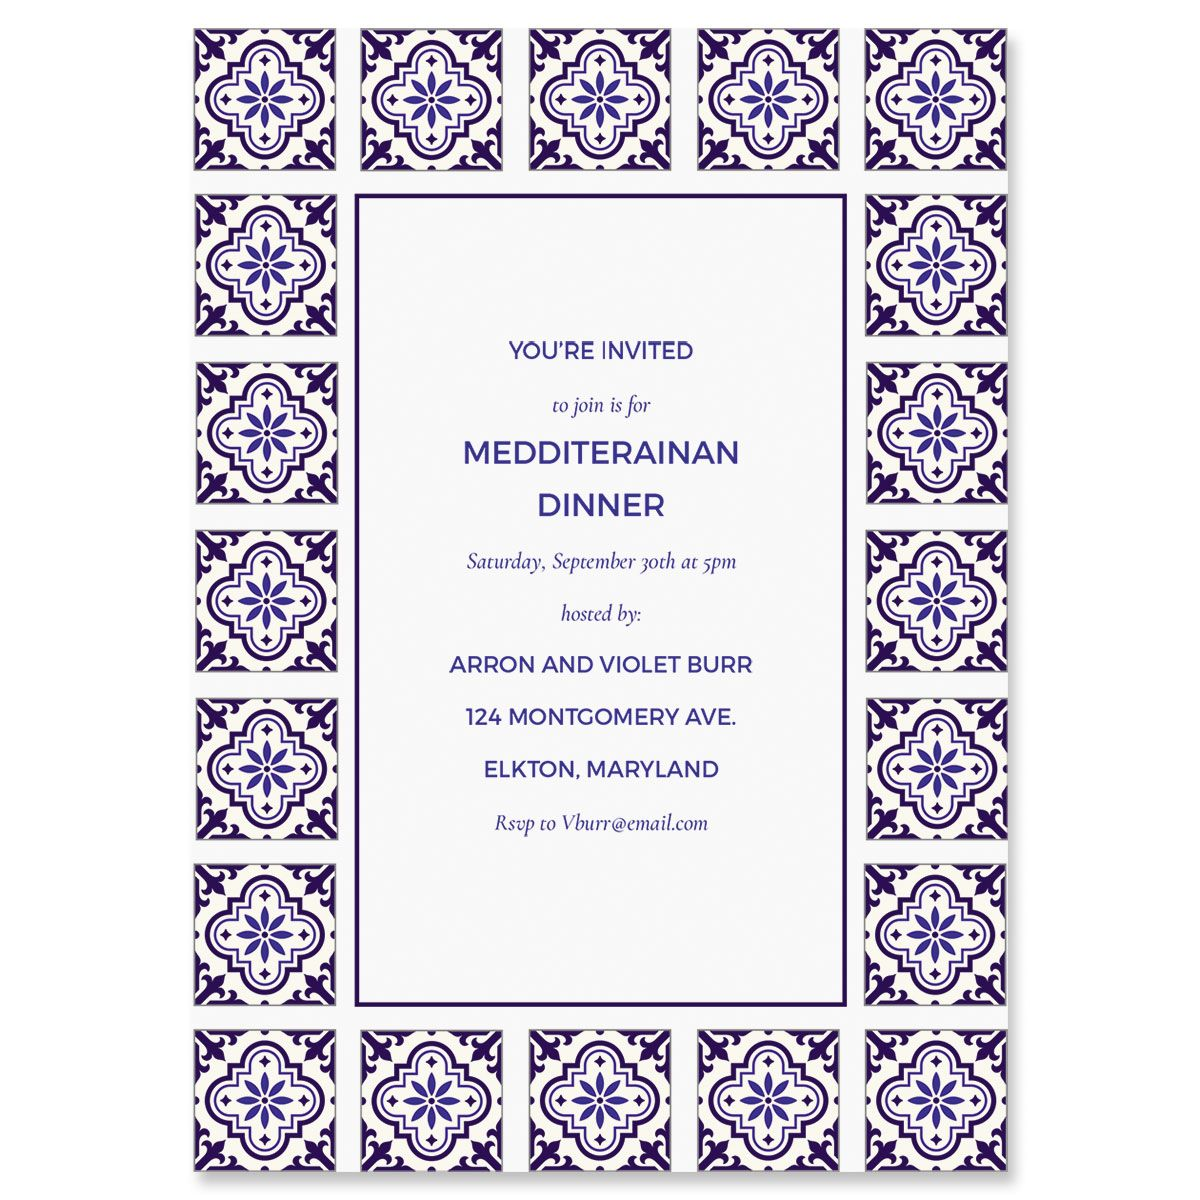 Personalized Styled Mediterranean Invitations